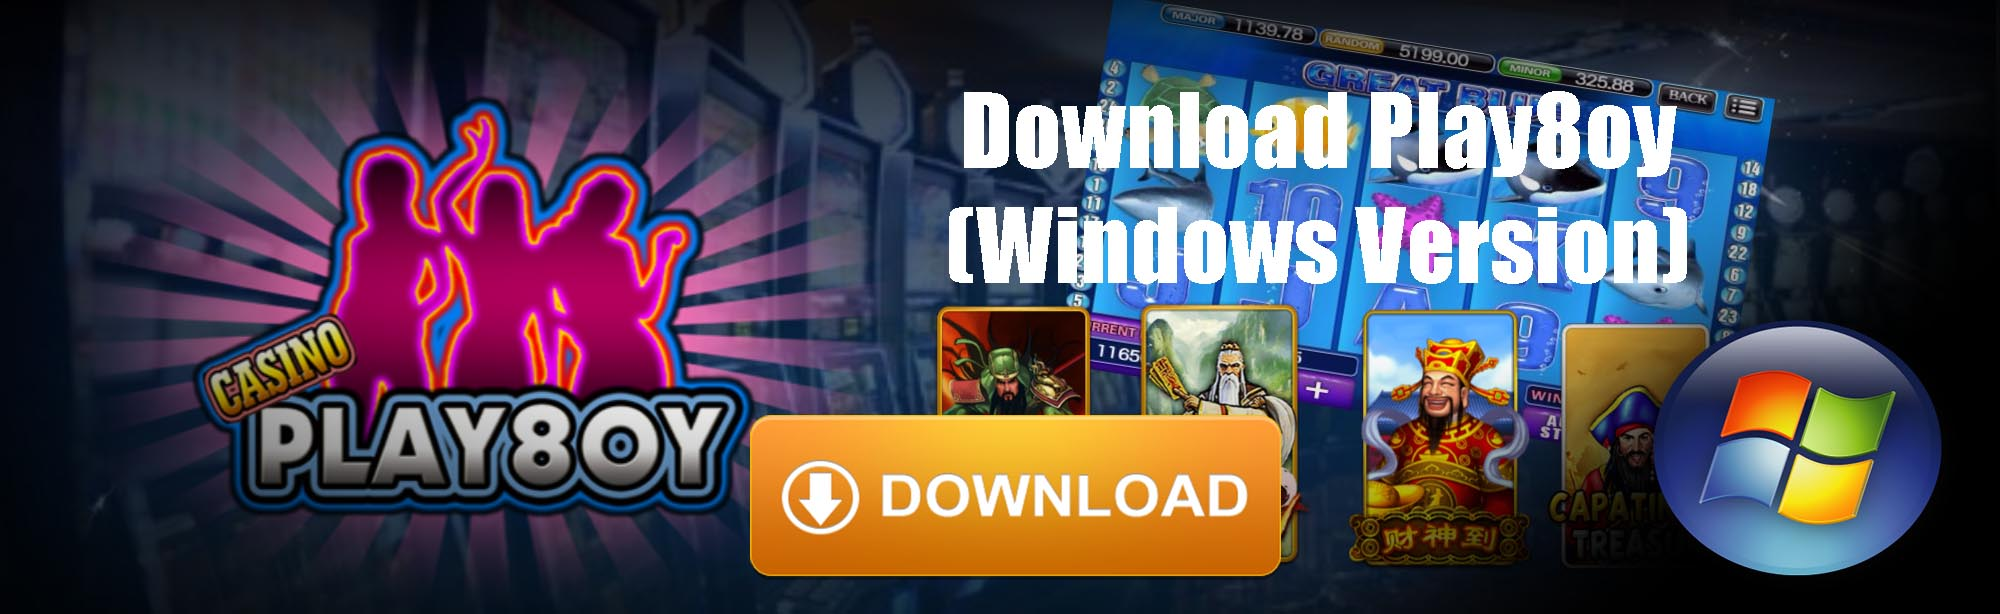 Download Play8oy